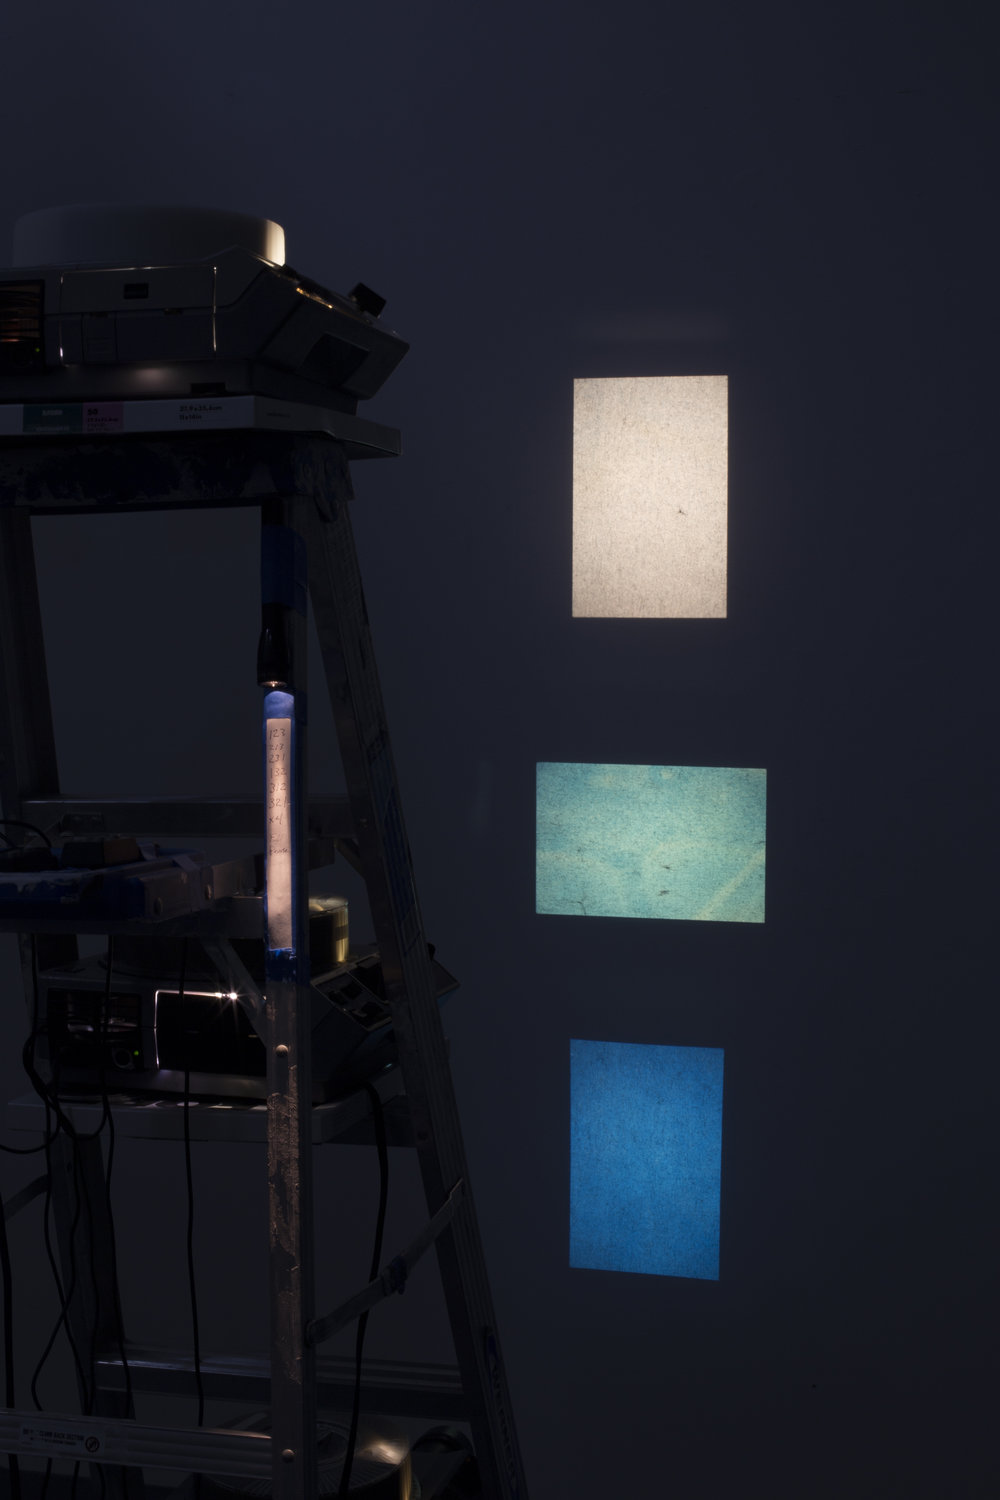 Building Codes, Cyanotype Projection Installation, 2017